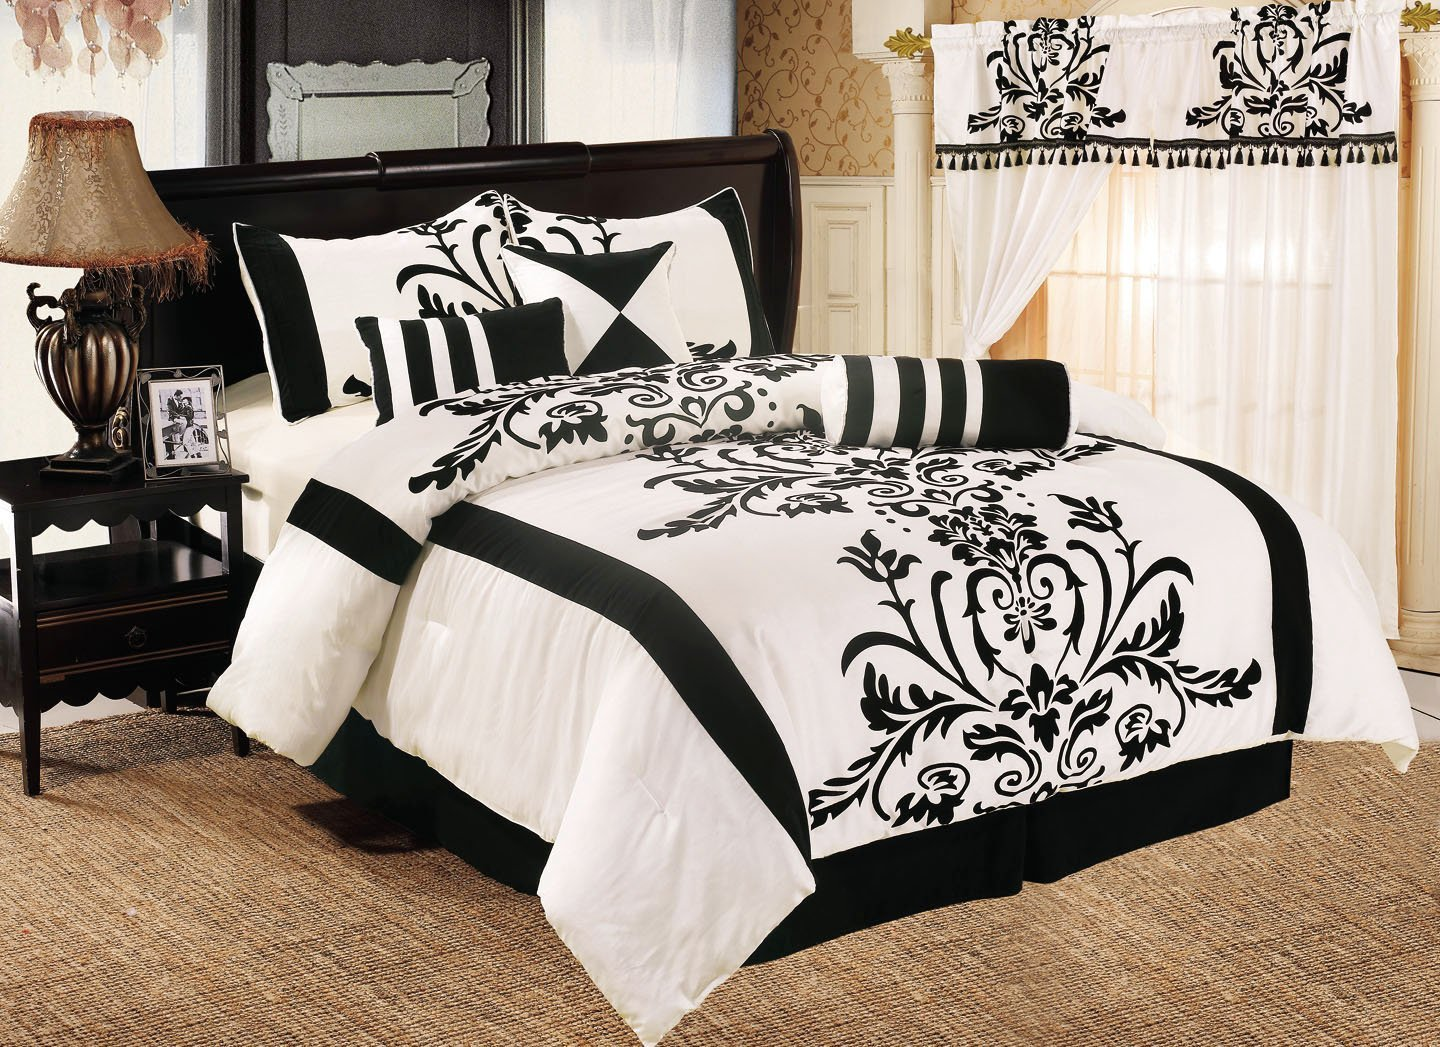 Classy Bedroom with black and white comforter sets and laminate porcelain floor also curtain and sidetables